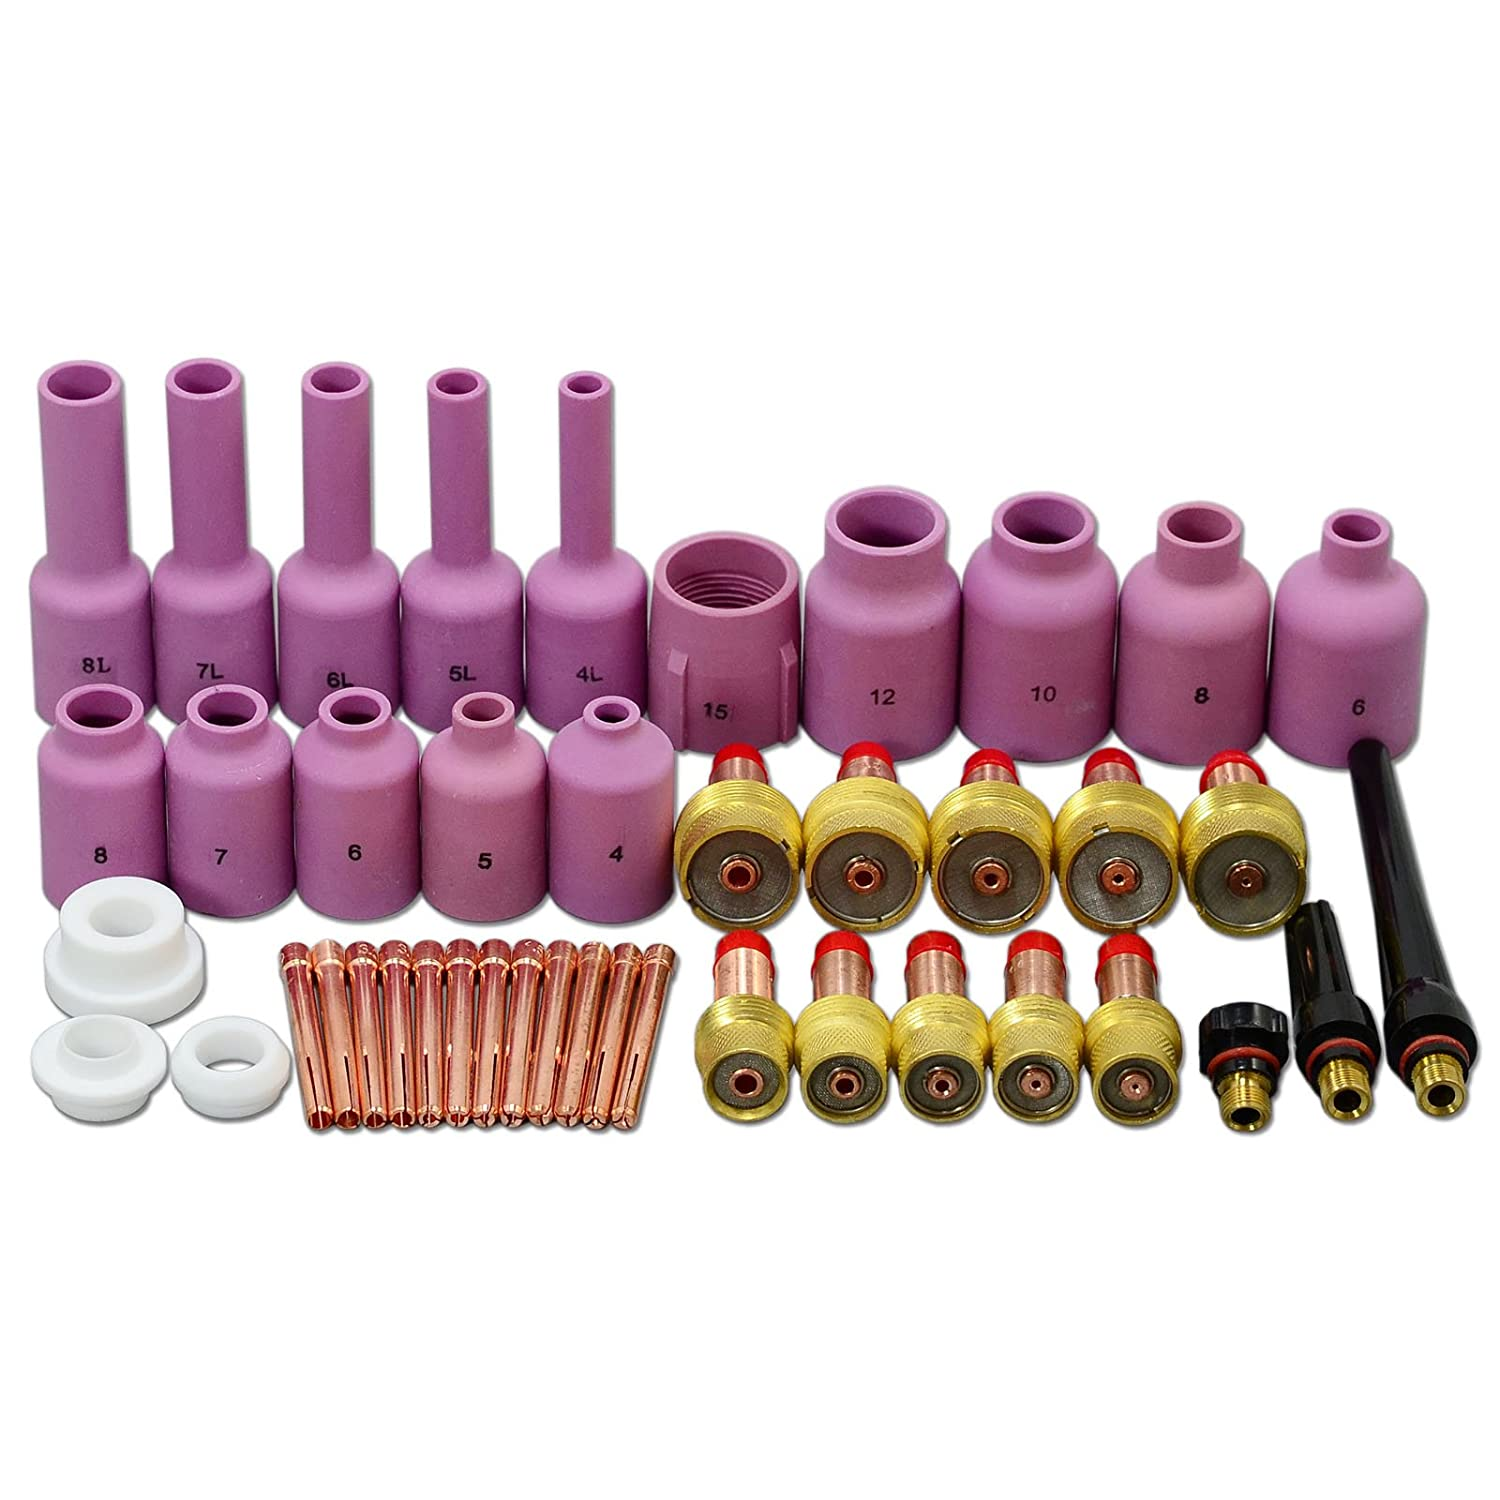 43pcs TIG long gaz Objectif TIG Retour Cap Collet Body Kit Fit TIG torche de soudage DB SR WP17 18 26 RIVERWELDstore WP-17 WP-18 WP-26